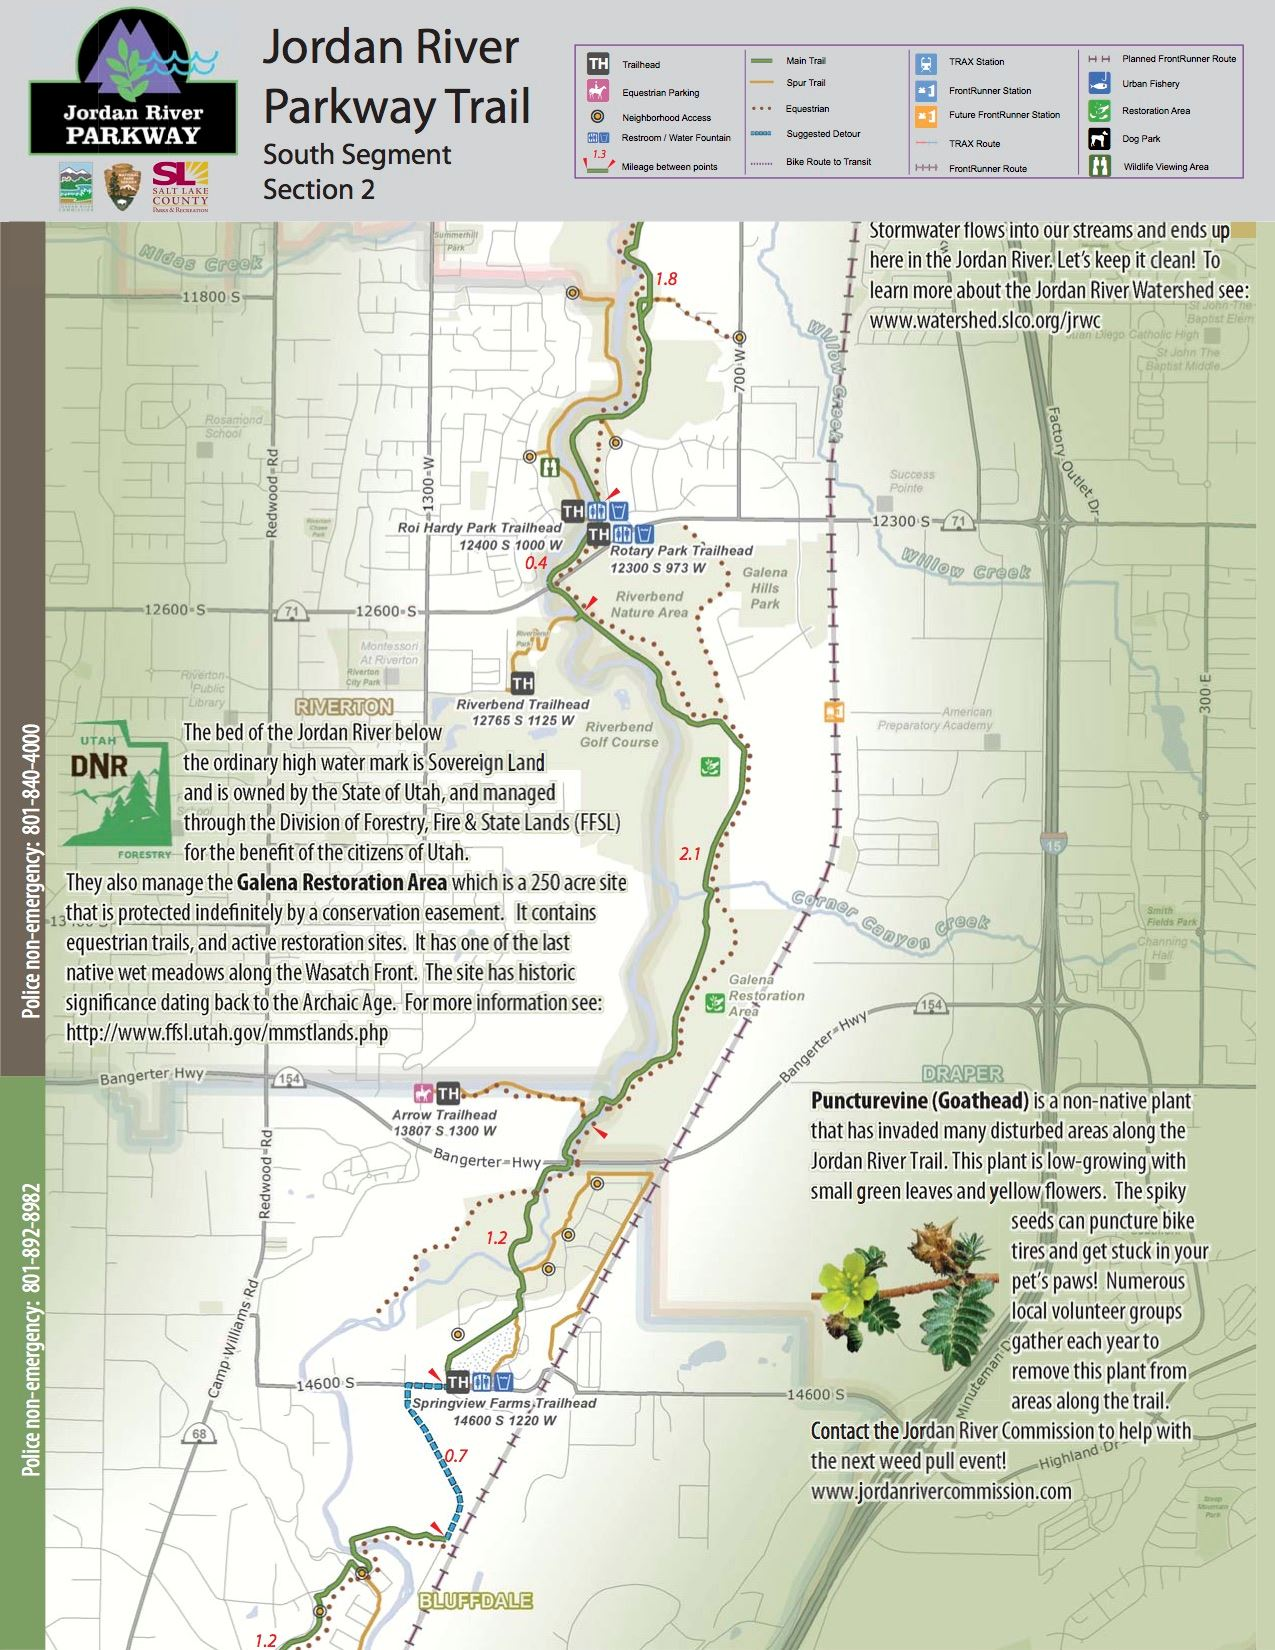 Jordan River Parkway Trail Bluffdale UT - World map jordan river